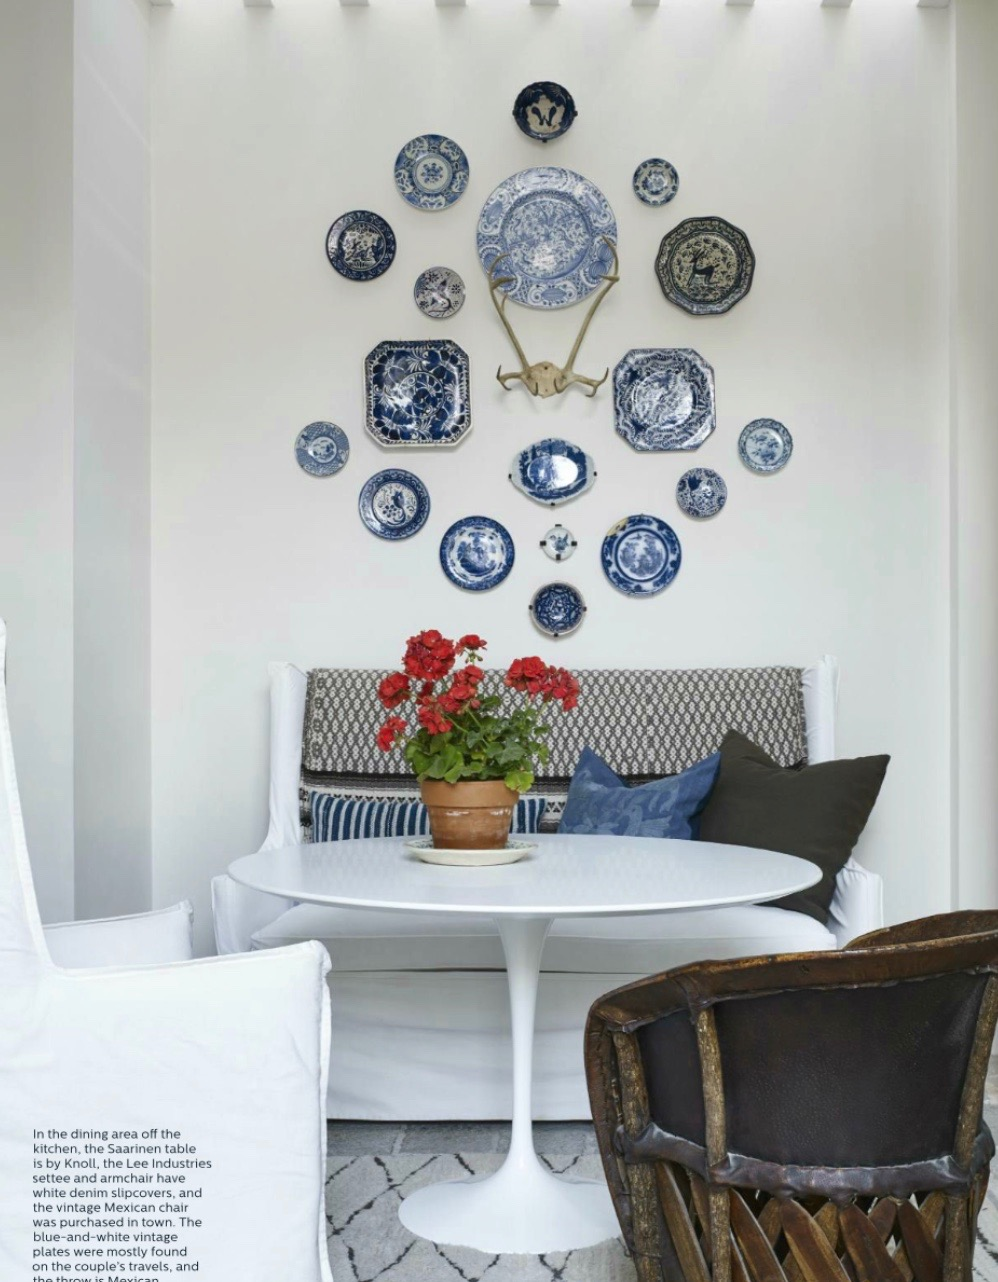 If a chandelier's not an option, take advantage of the wall to display a collection of ceramics perhaps, or a bold artwork